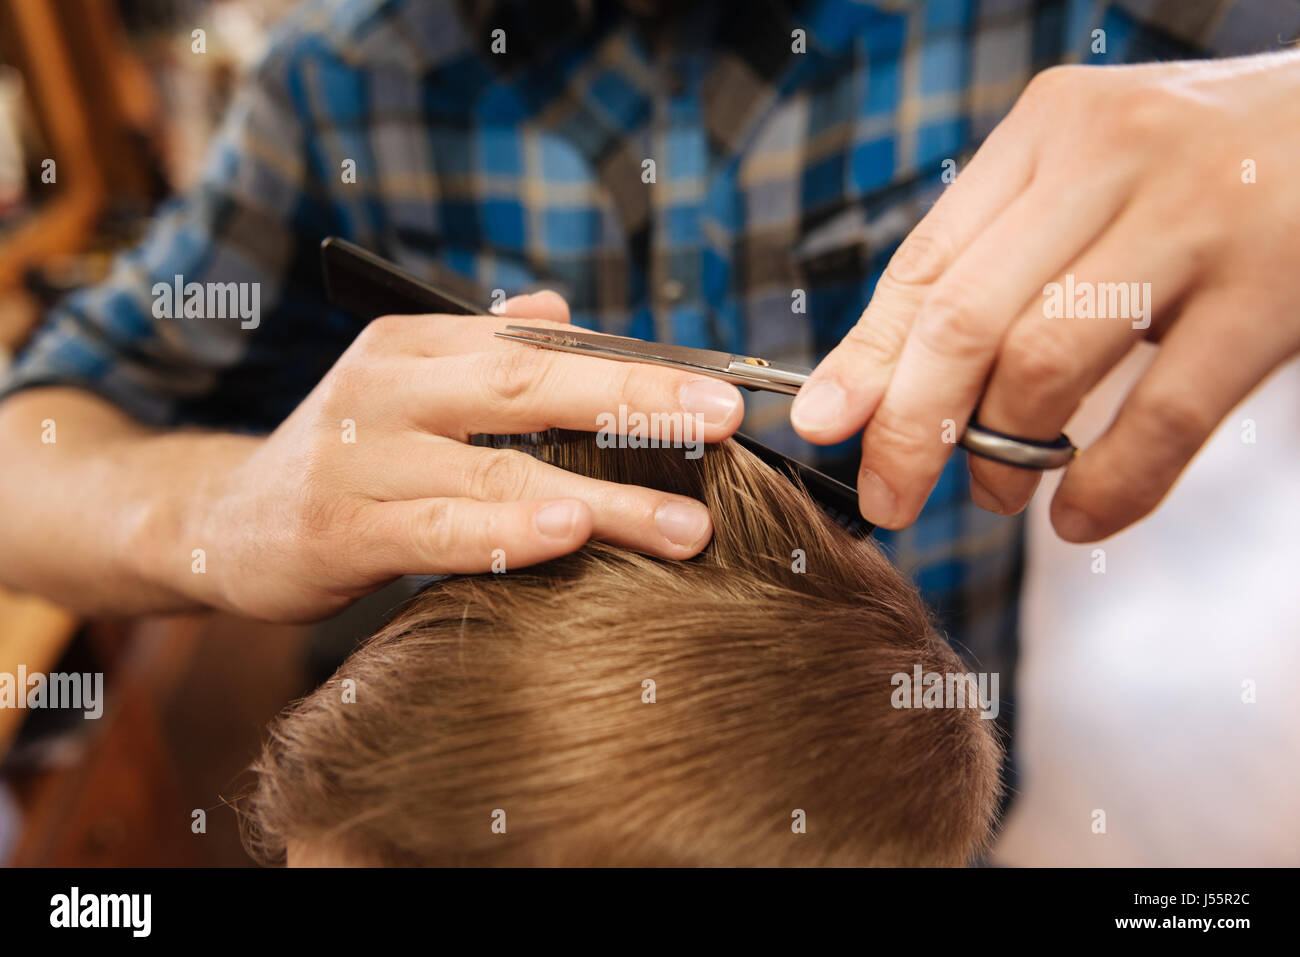 Ends of the hair being cut by a professional hairdresser - Stock Image